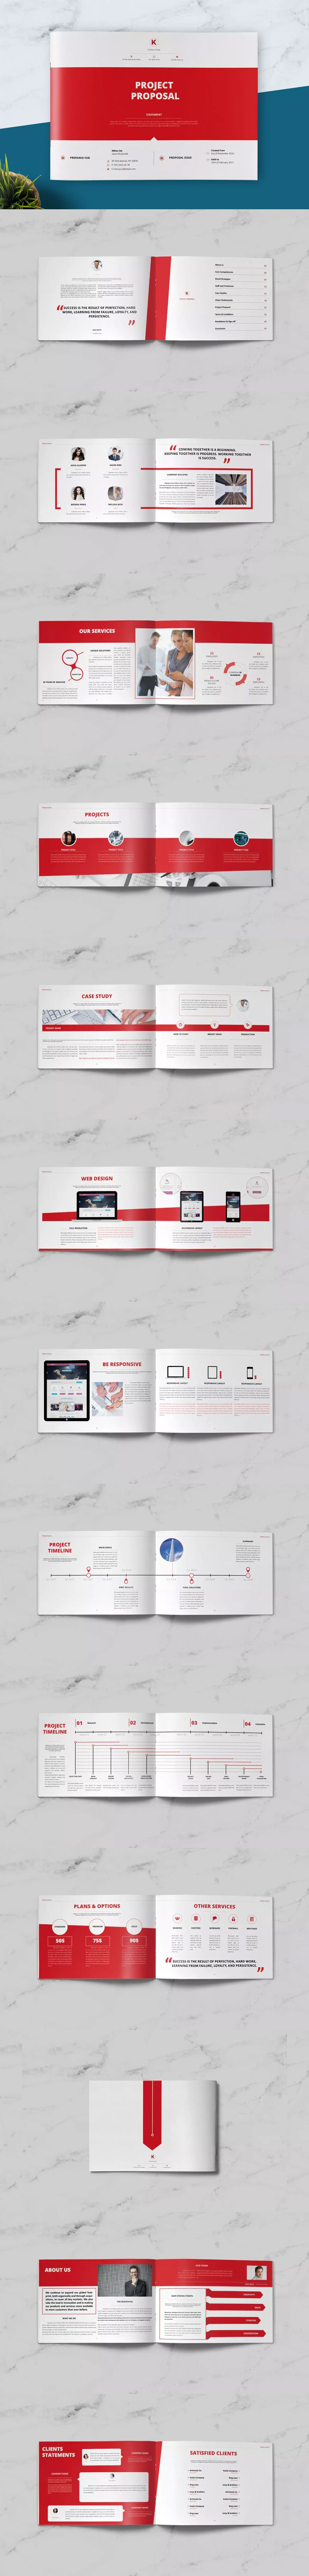 Project Proposal Brochure Template InDesign INDD A4 and Letter size